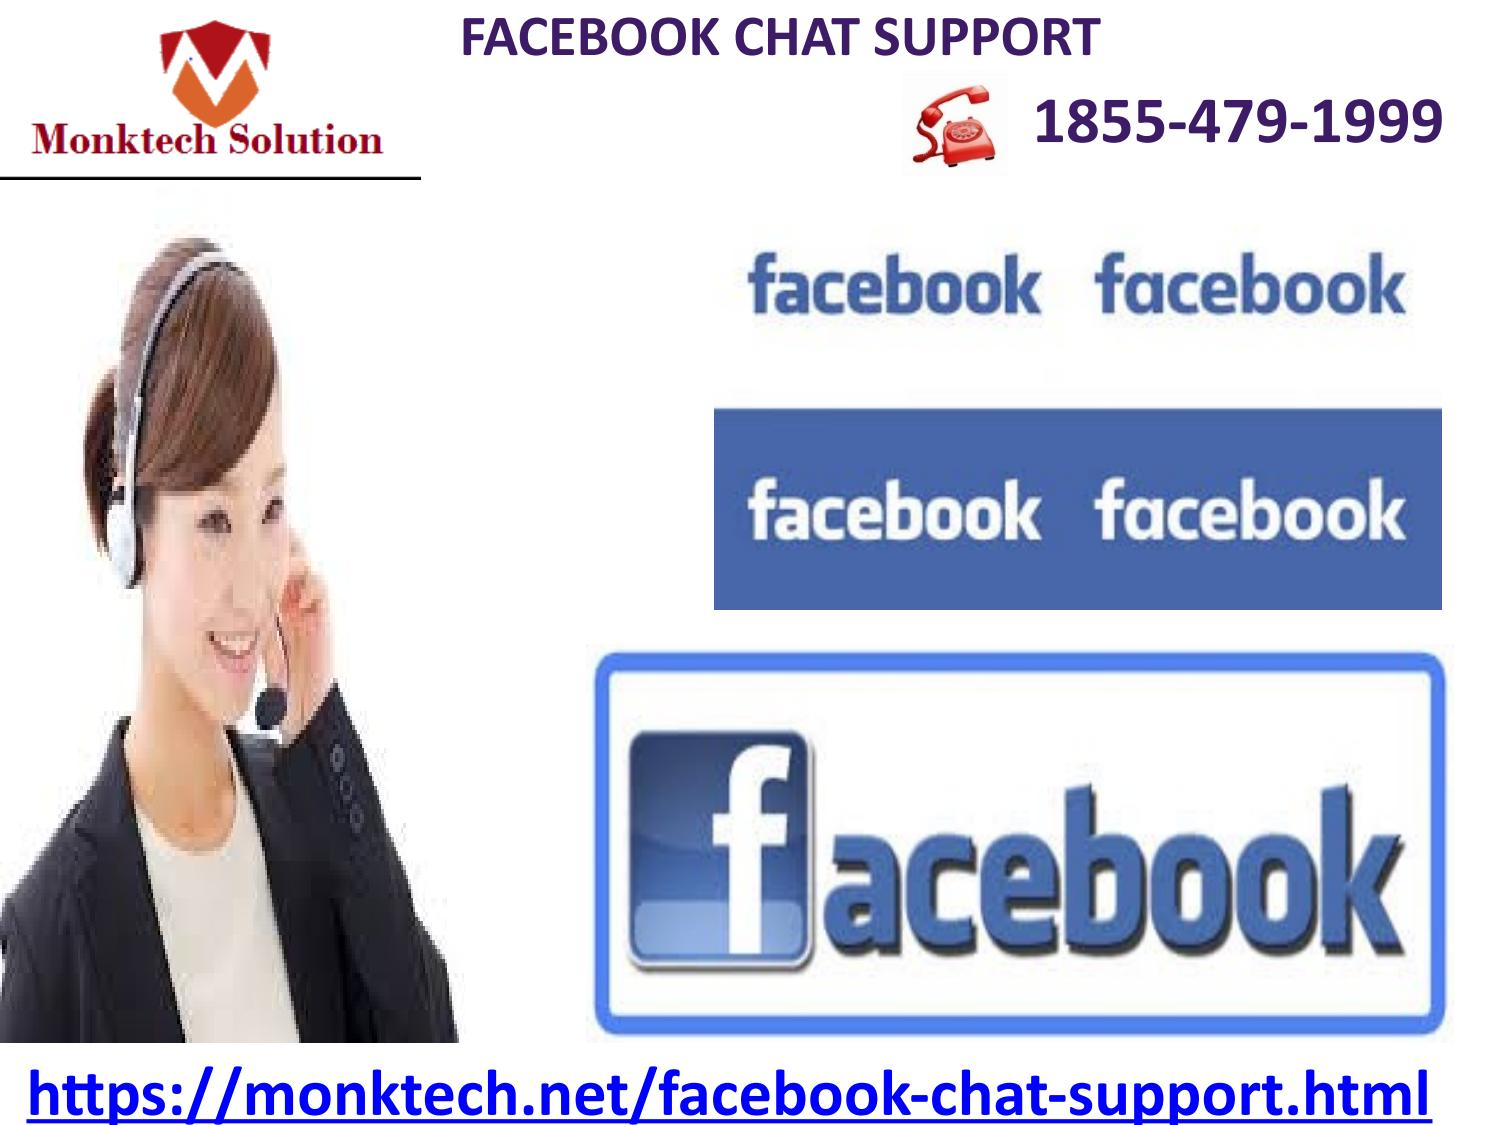 Choose your audience on Facebook with Facebook chat support